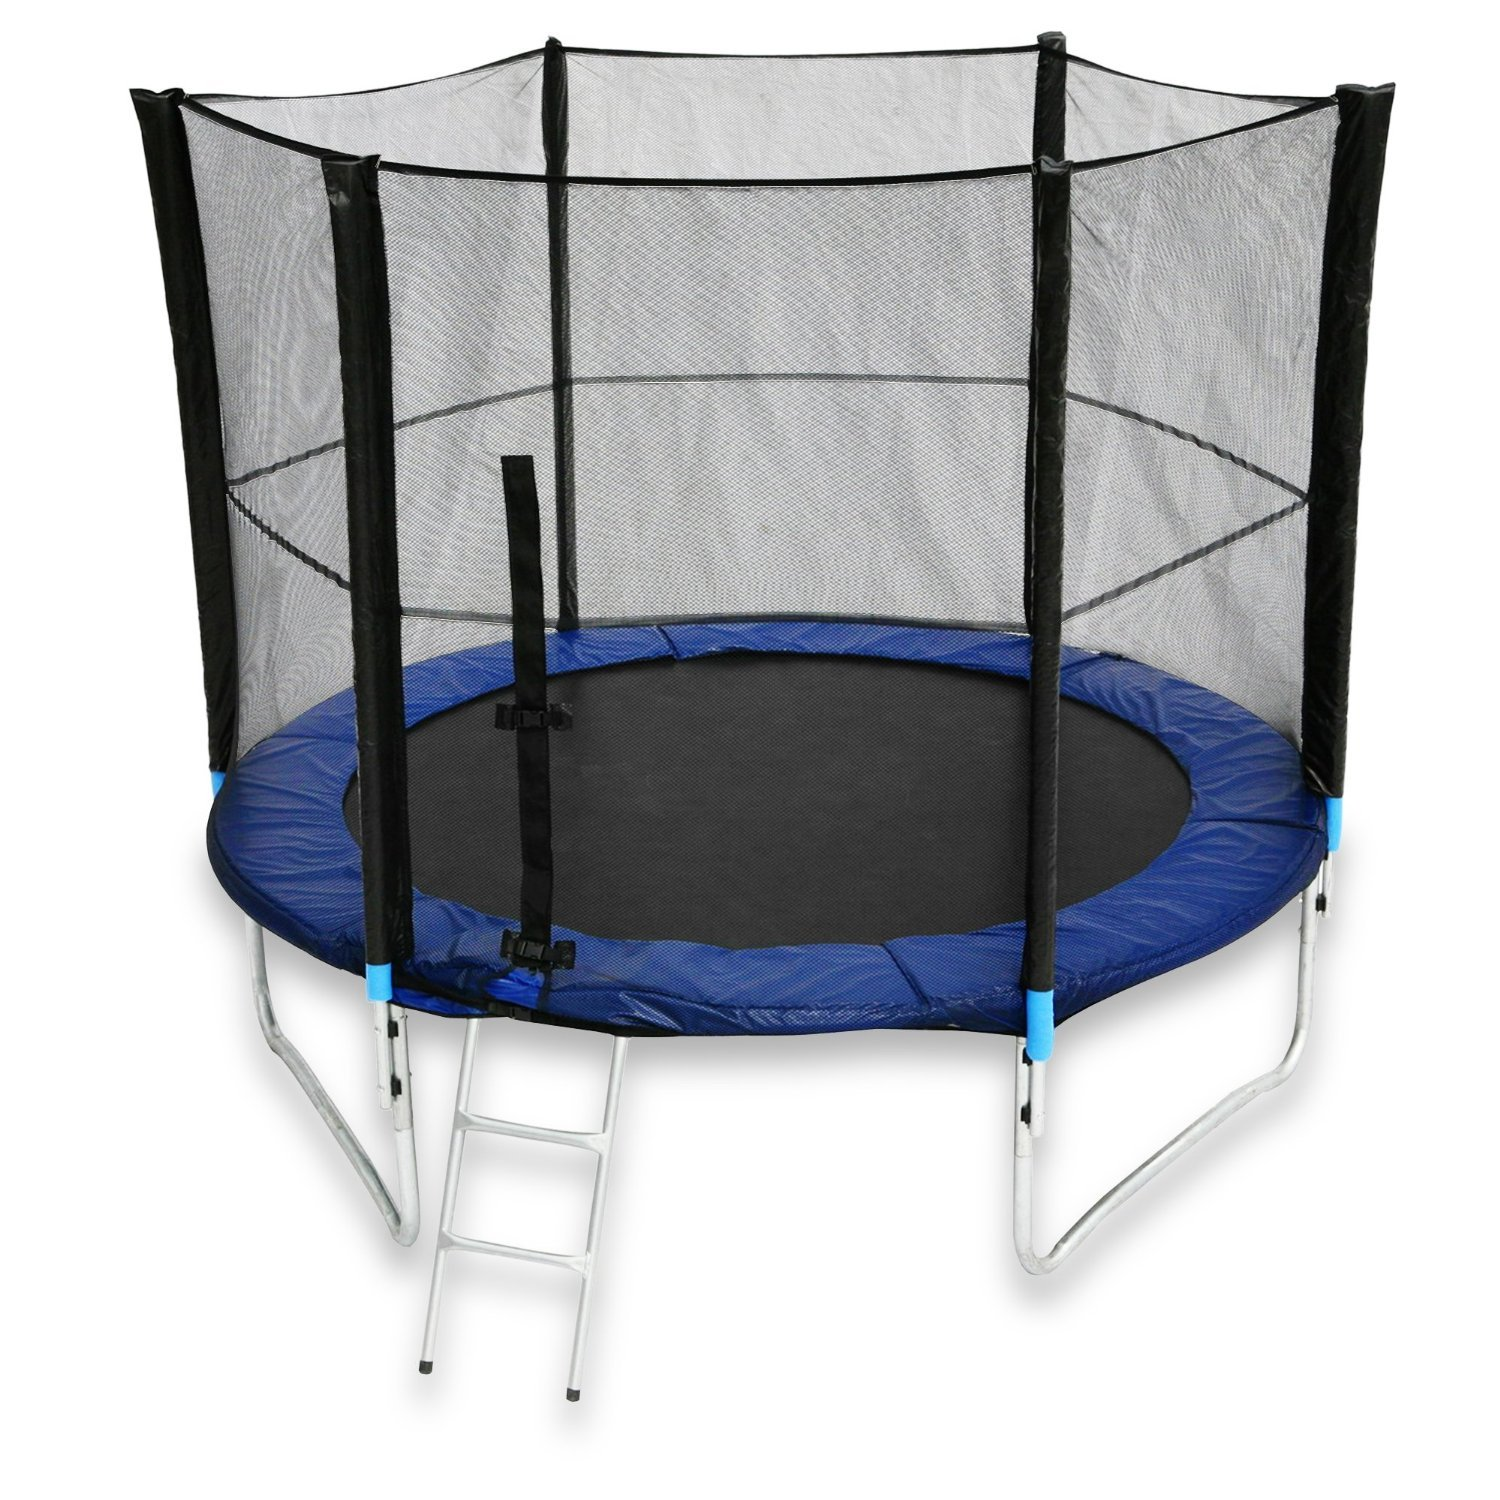 We R Sports Trampoline With Safety Net Enclosure